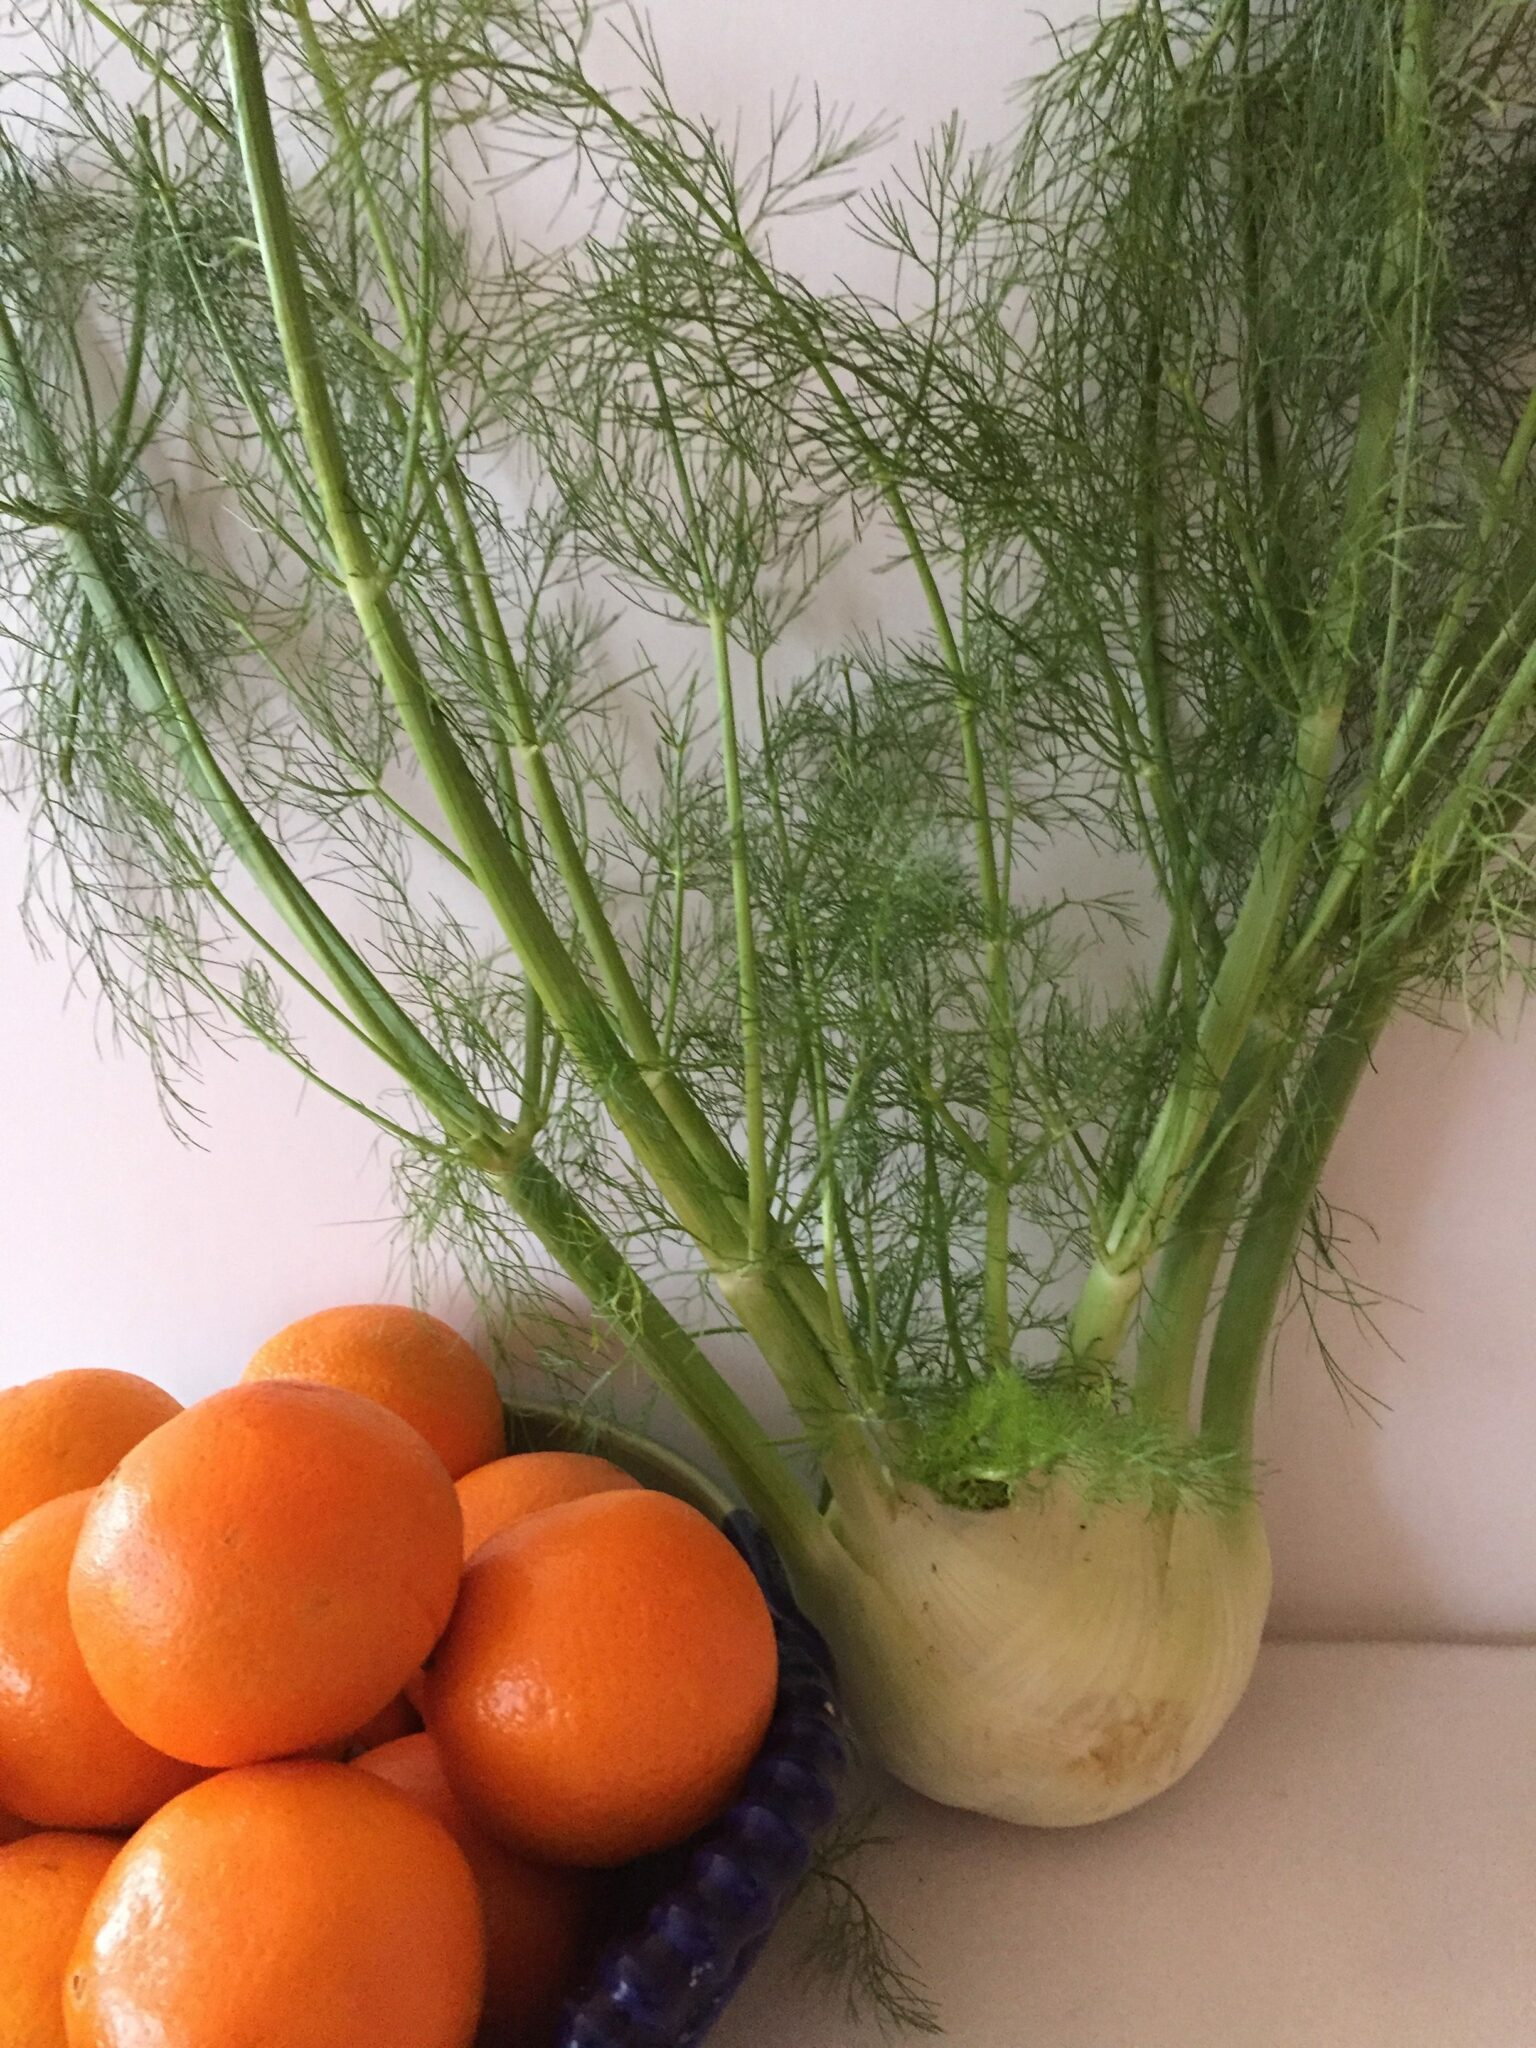 The Fennel Fell In Love With An Orange